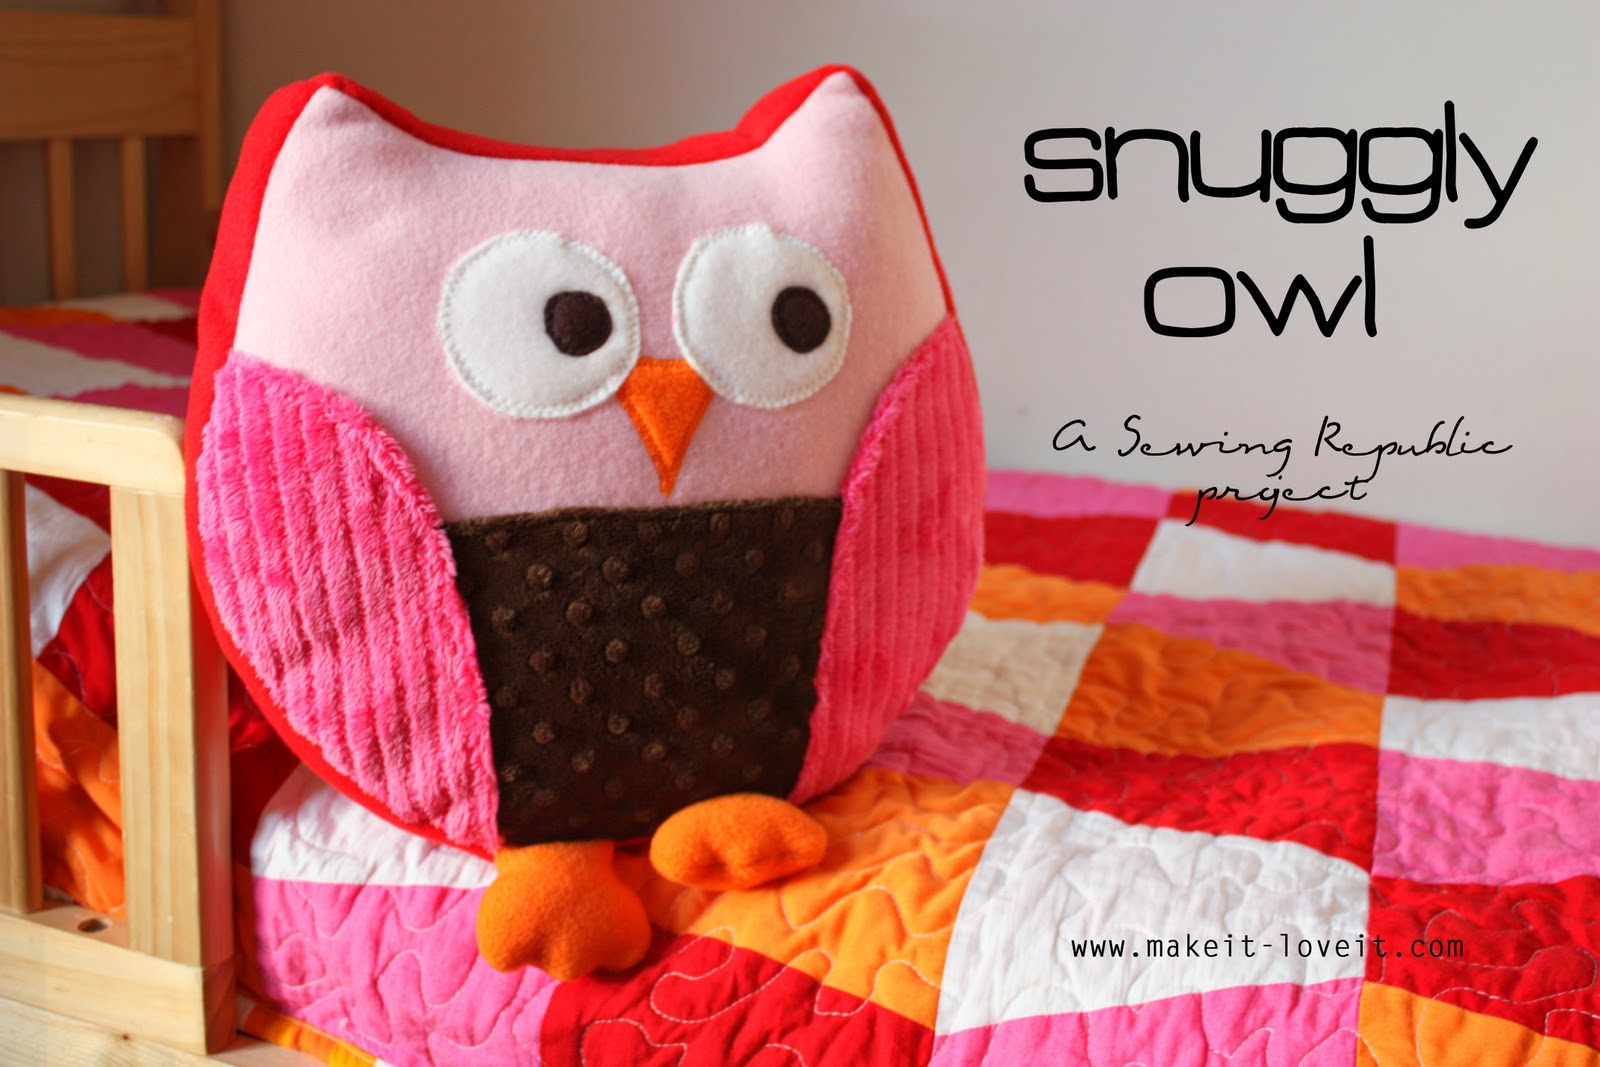 Snuggly Owl For Sewing Republic Make It And Love It